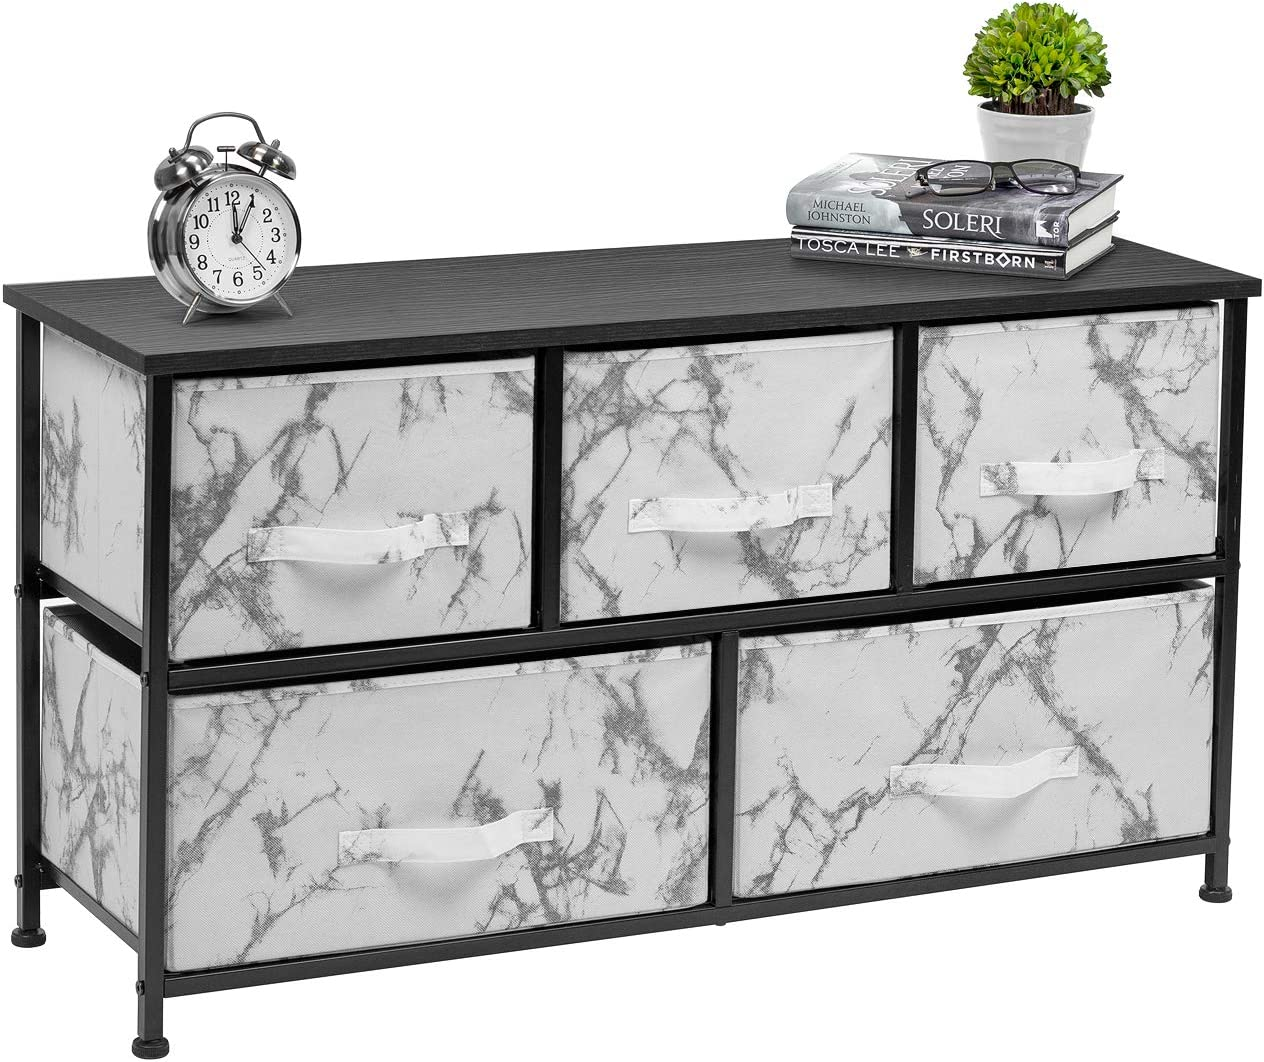 Sorbus Dresser with Drawers – Furniture Storage Chest Tower Unit for Bedroom, Hallway, Closet, Office Organization – Steel Frame, Wood Top, Marble Pattern Fabric Bins Marble White Black Frame